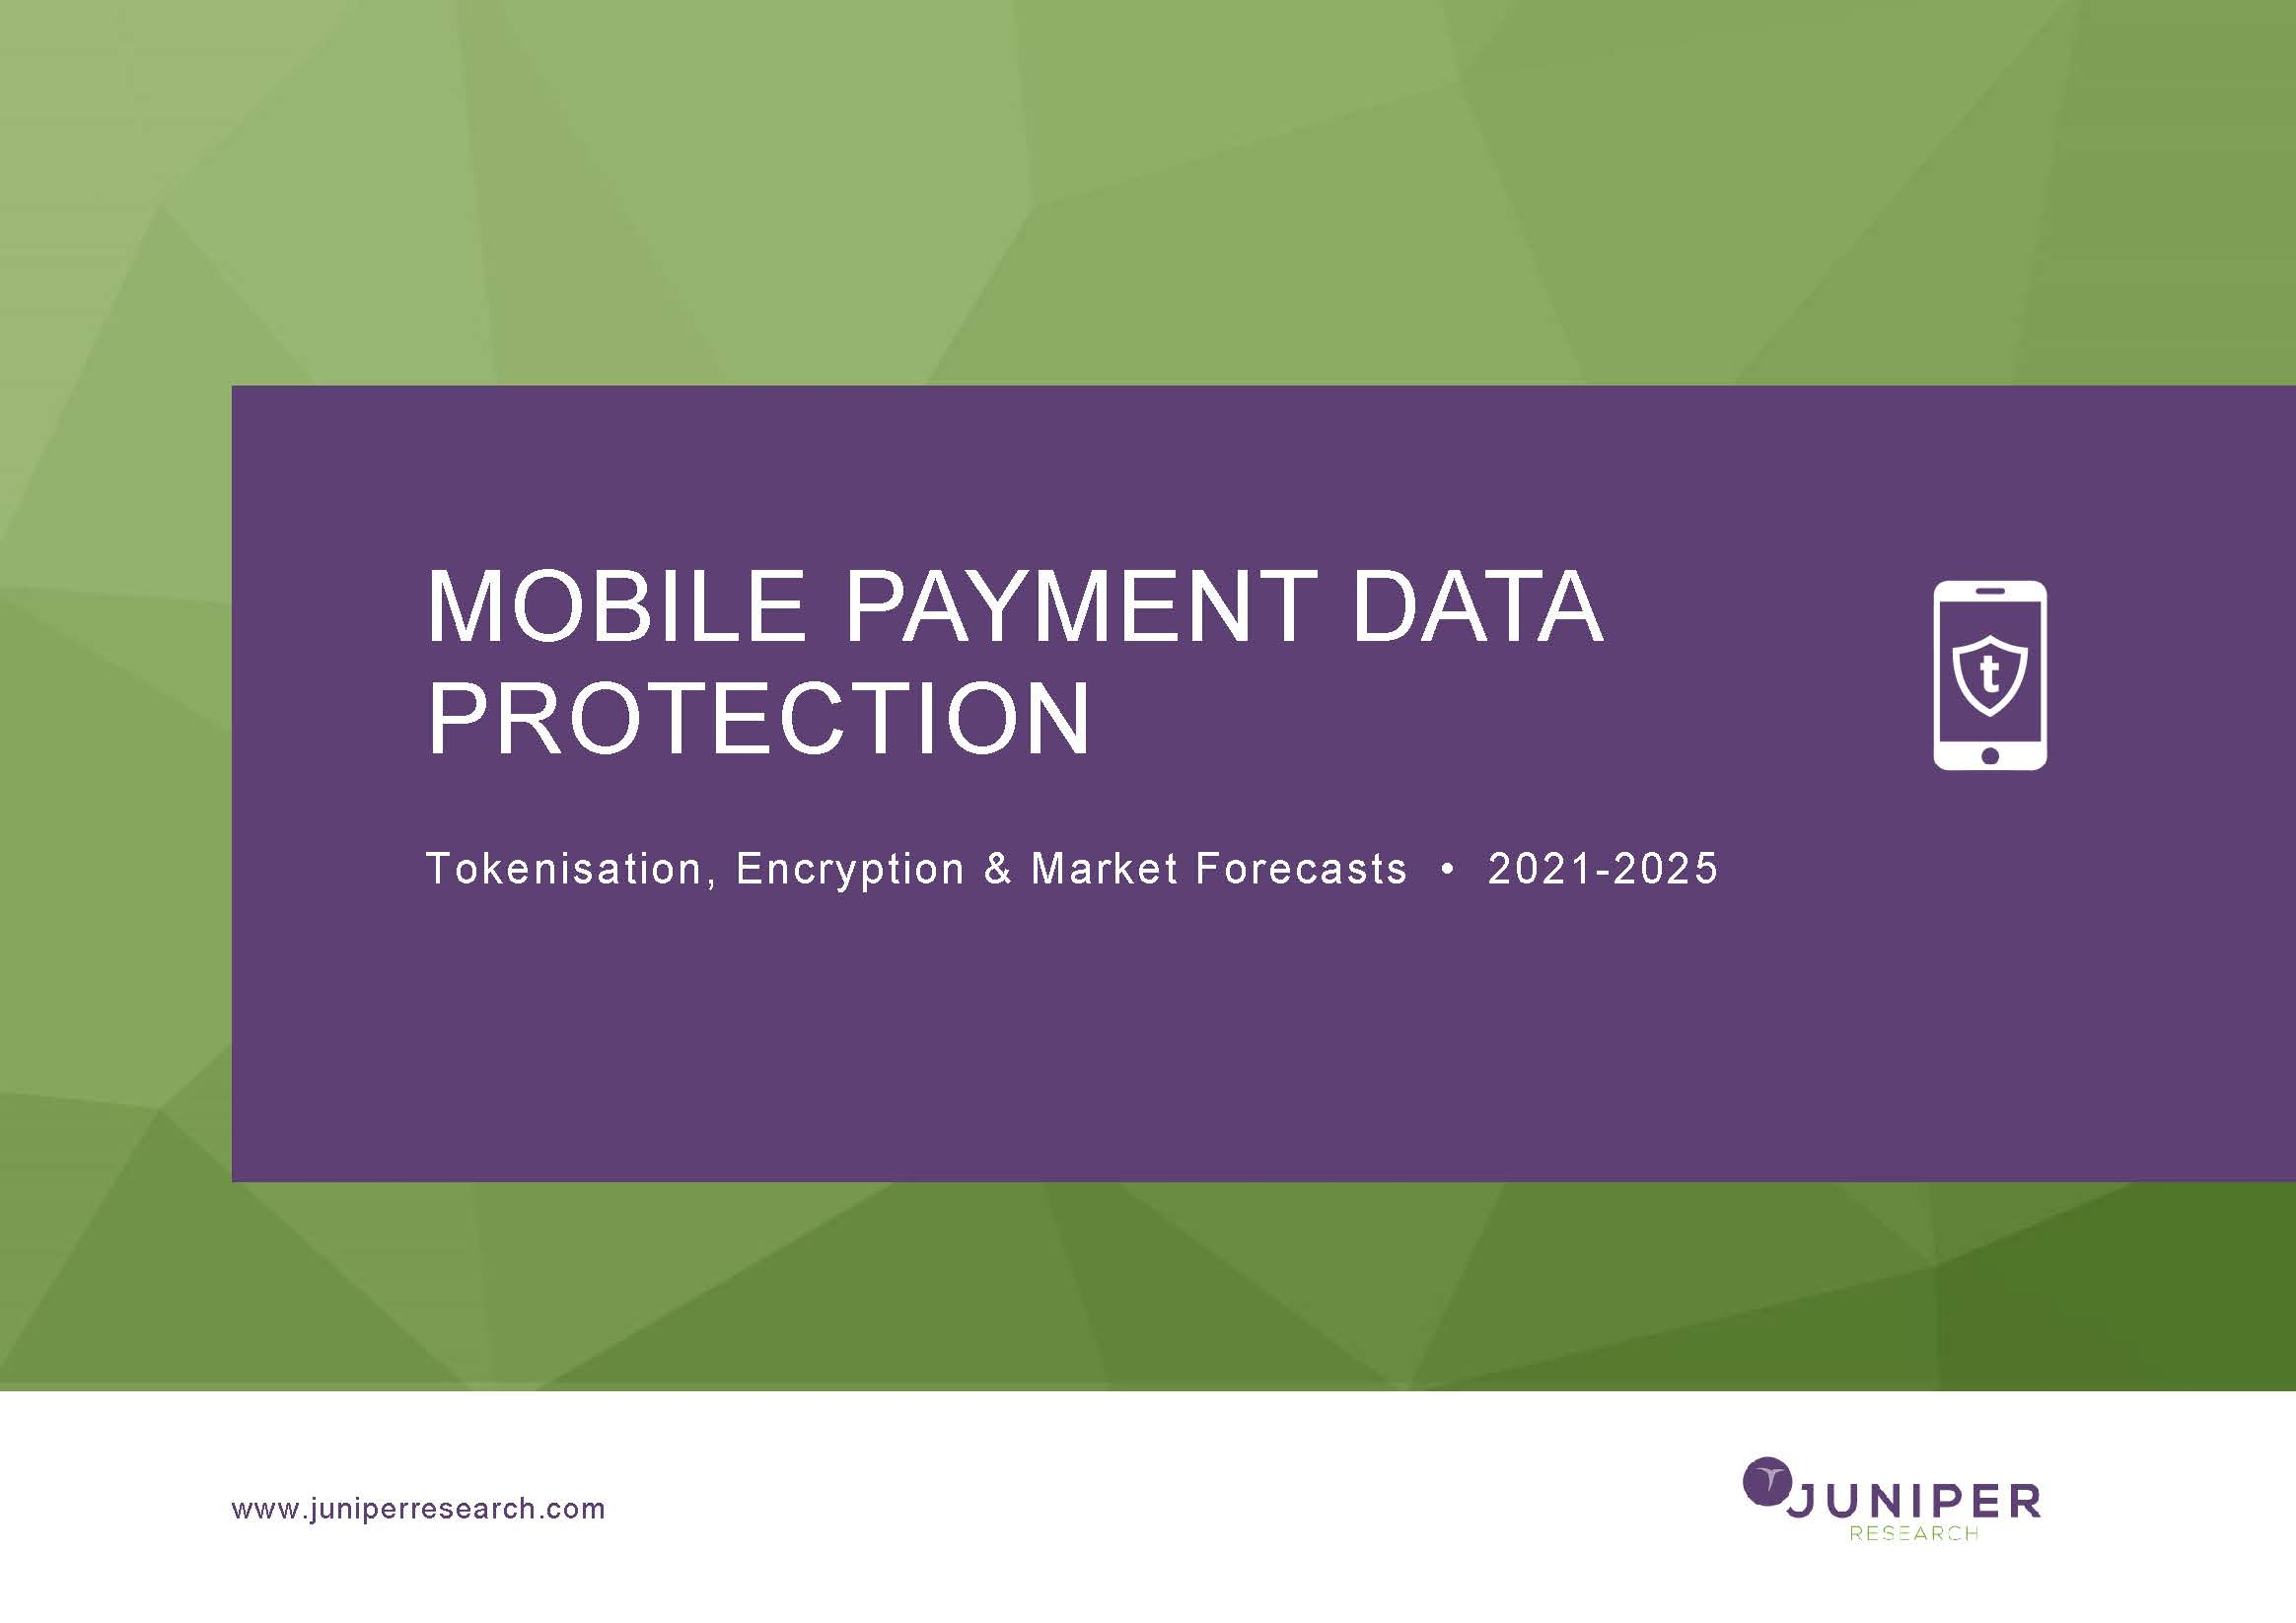 Mobile Payment Data Protection